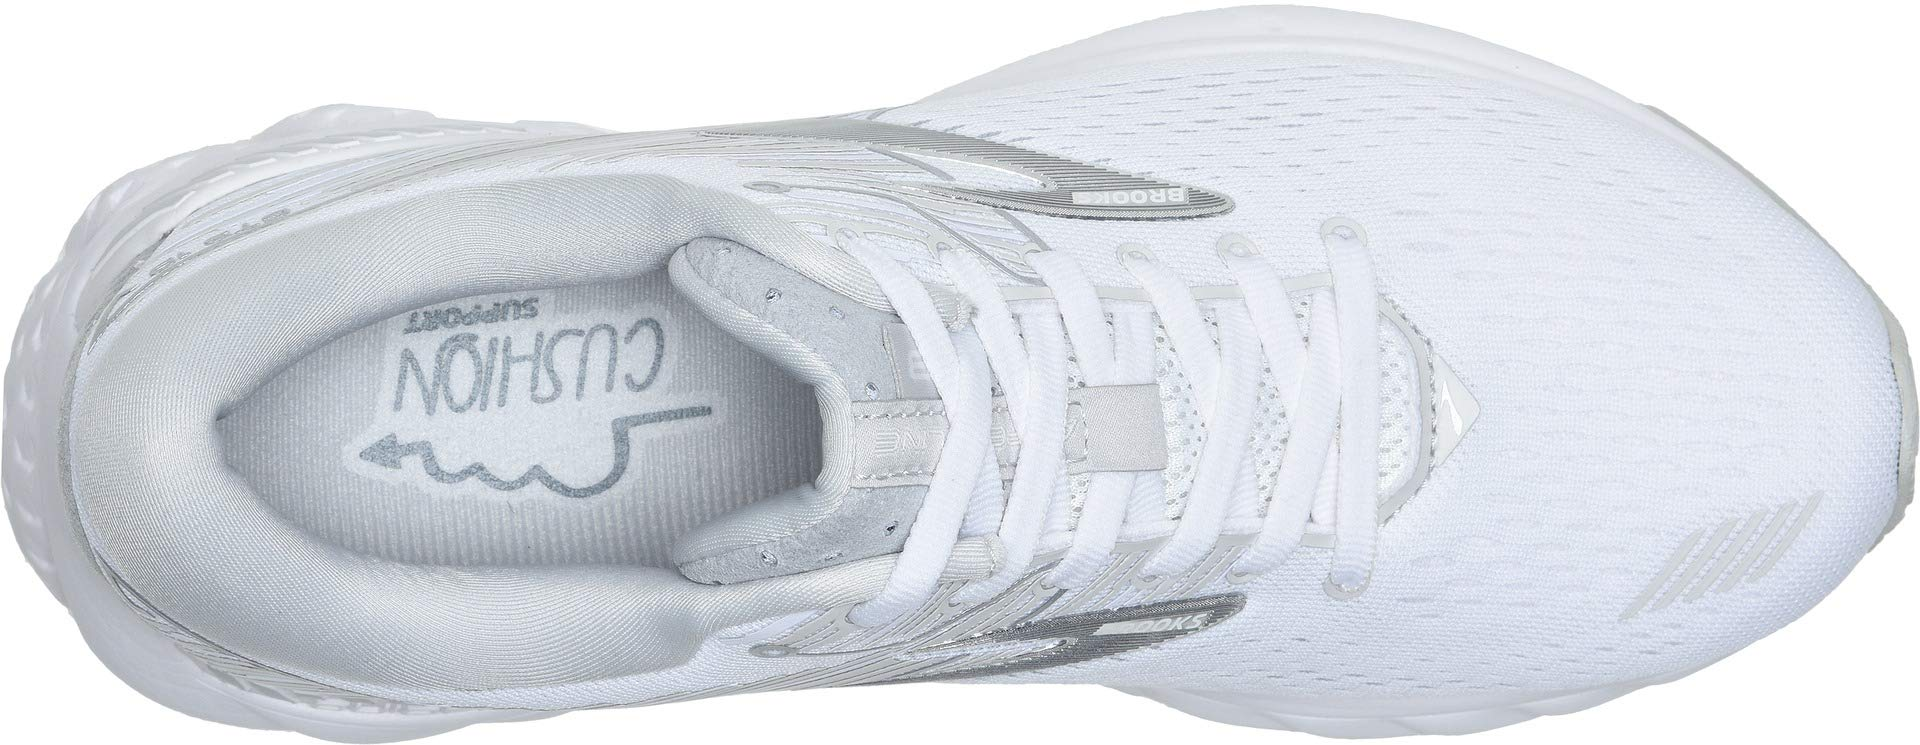 Brooks Women's Adrenaline GTS 19 White/White/Grey 5 D US by Brooks (Image #2)